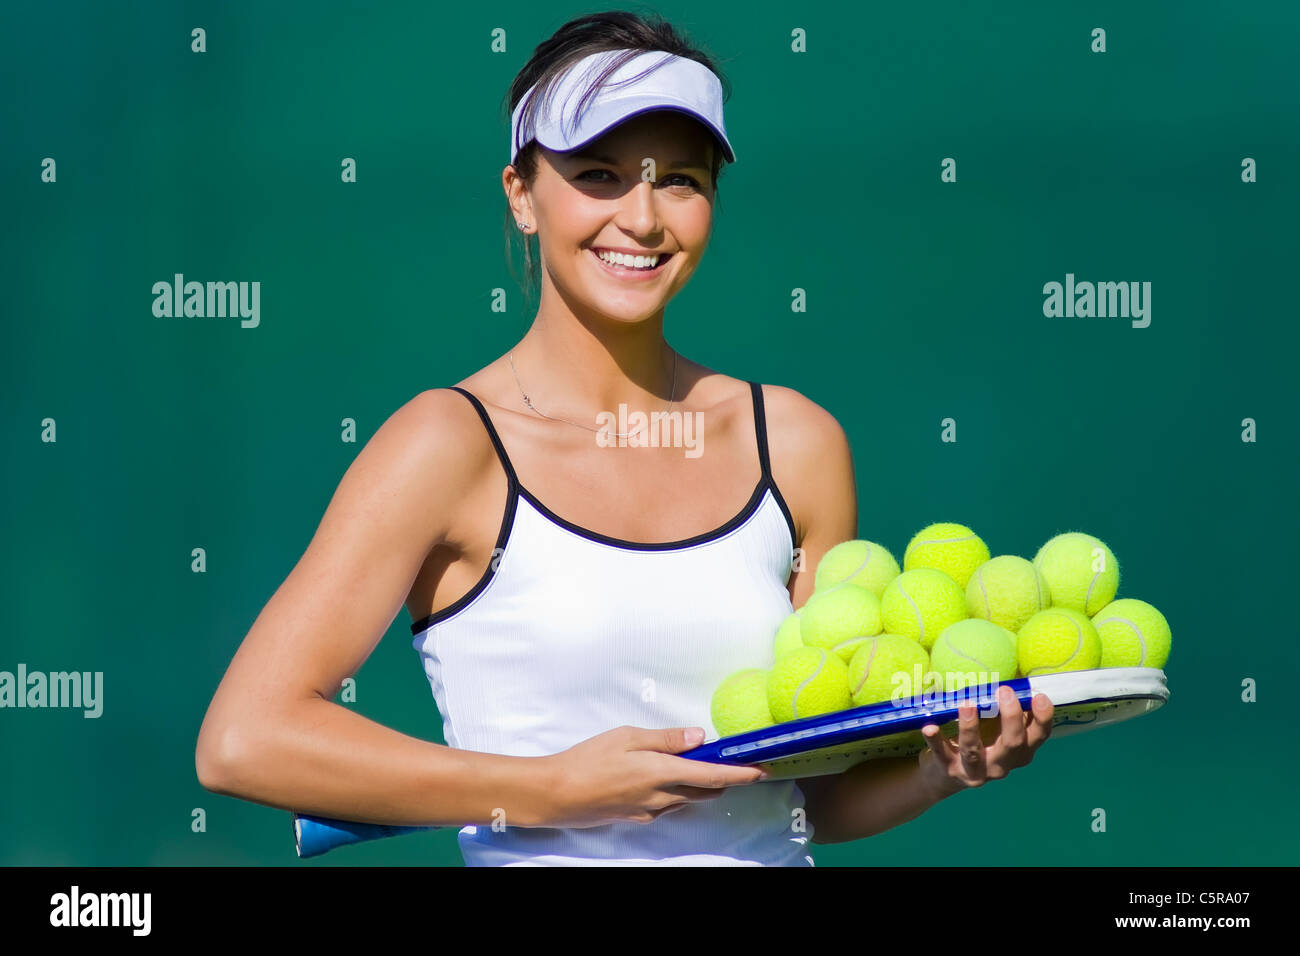 A tennis player with a welcoming smile on court. - Stock Image